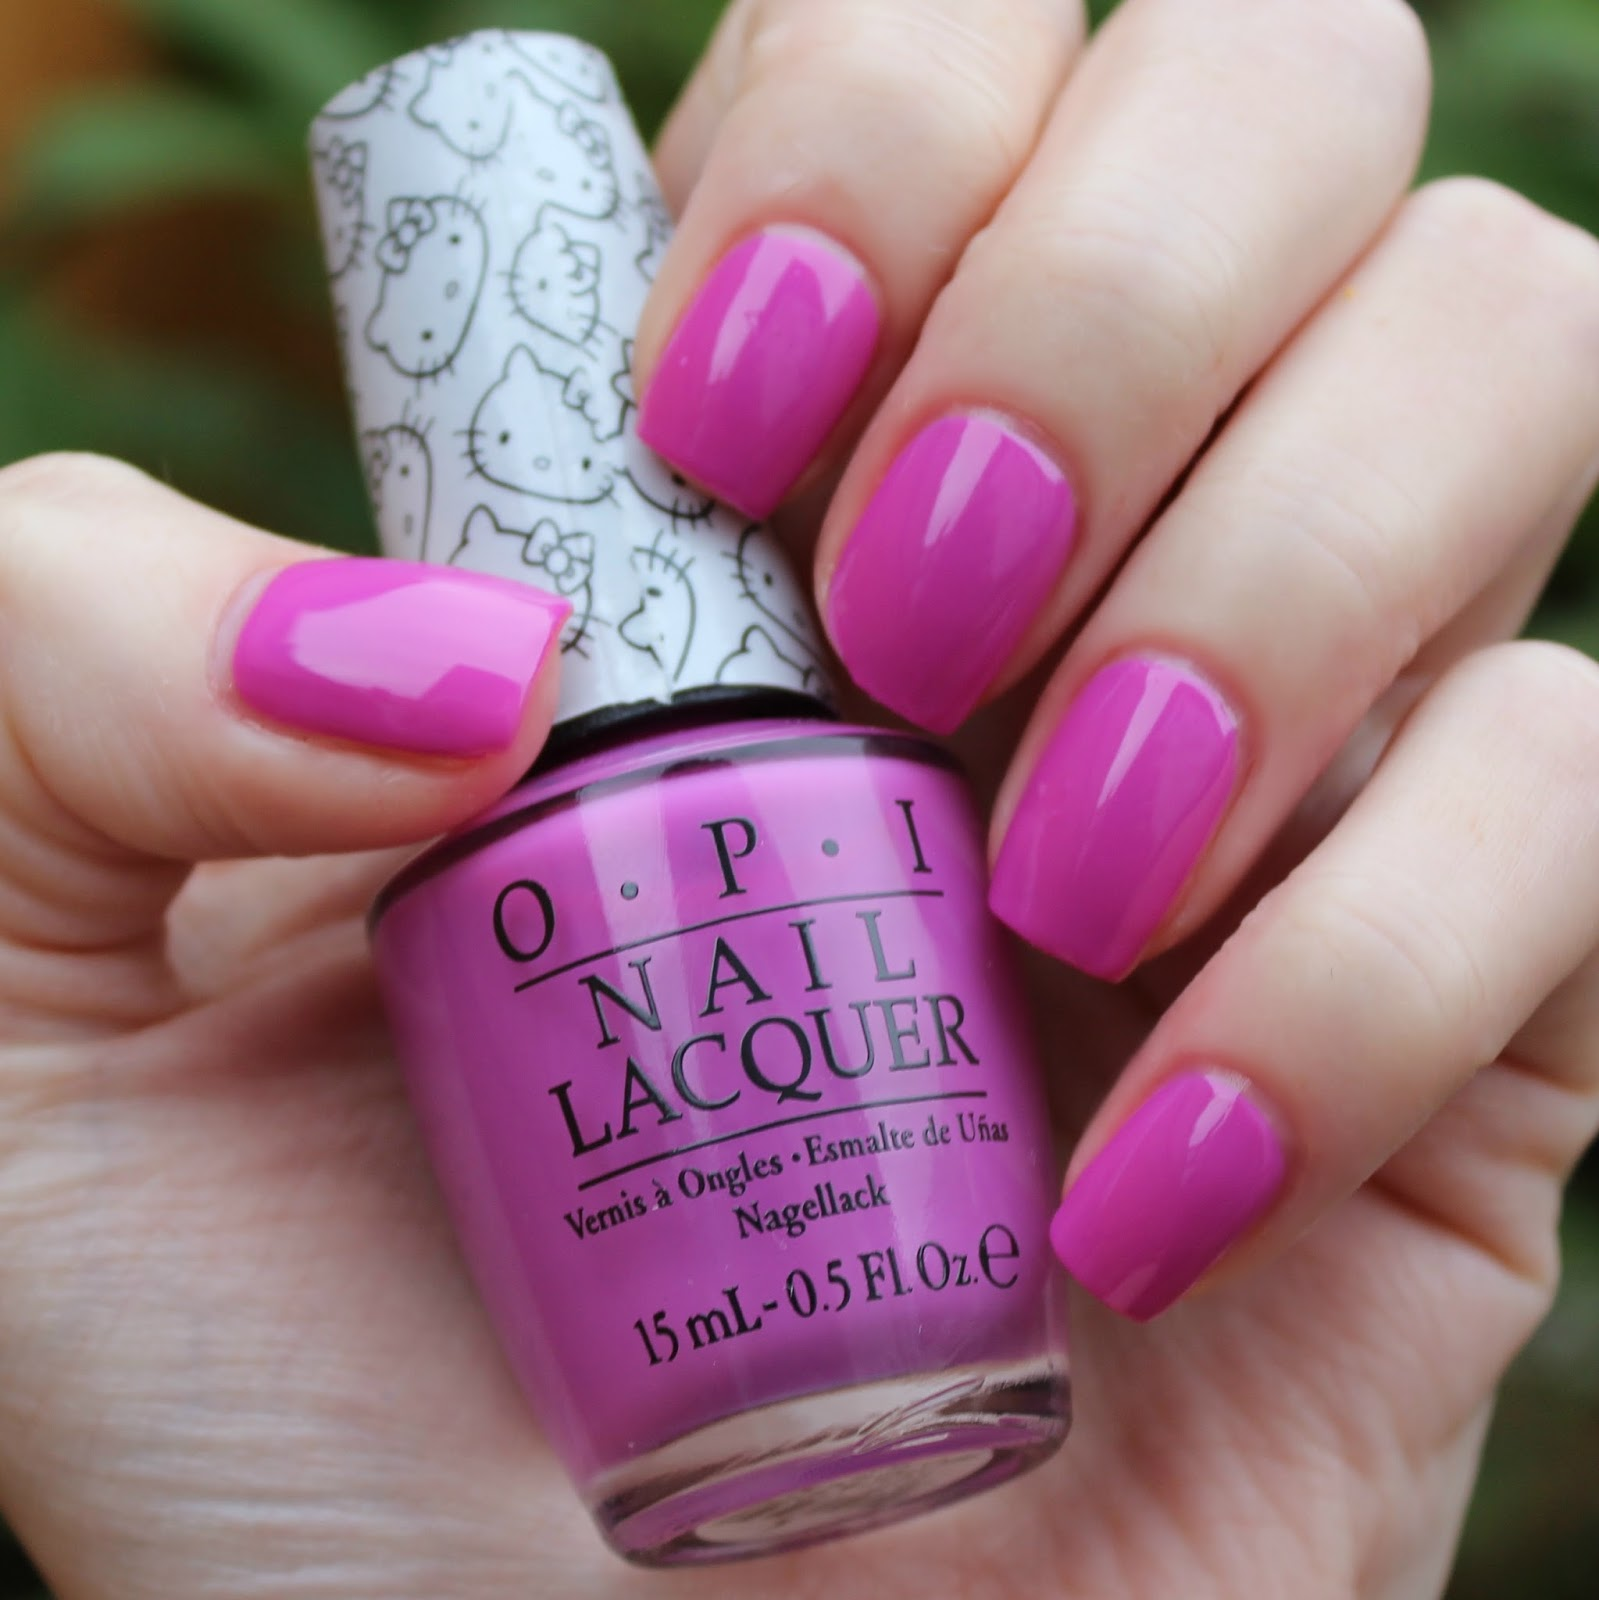 dahlia nails: opi hello kitty 2016 swatches & review